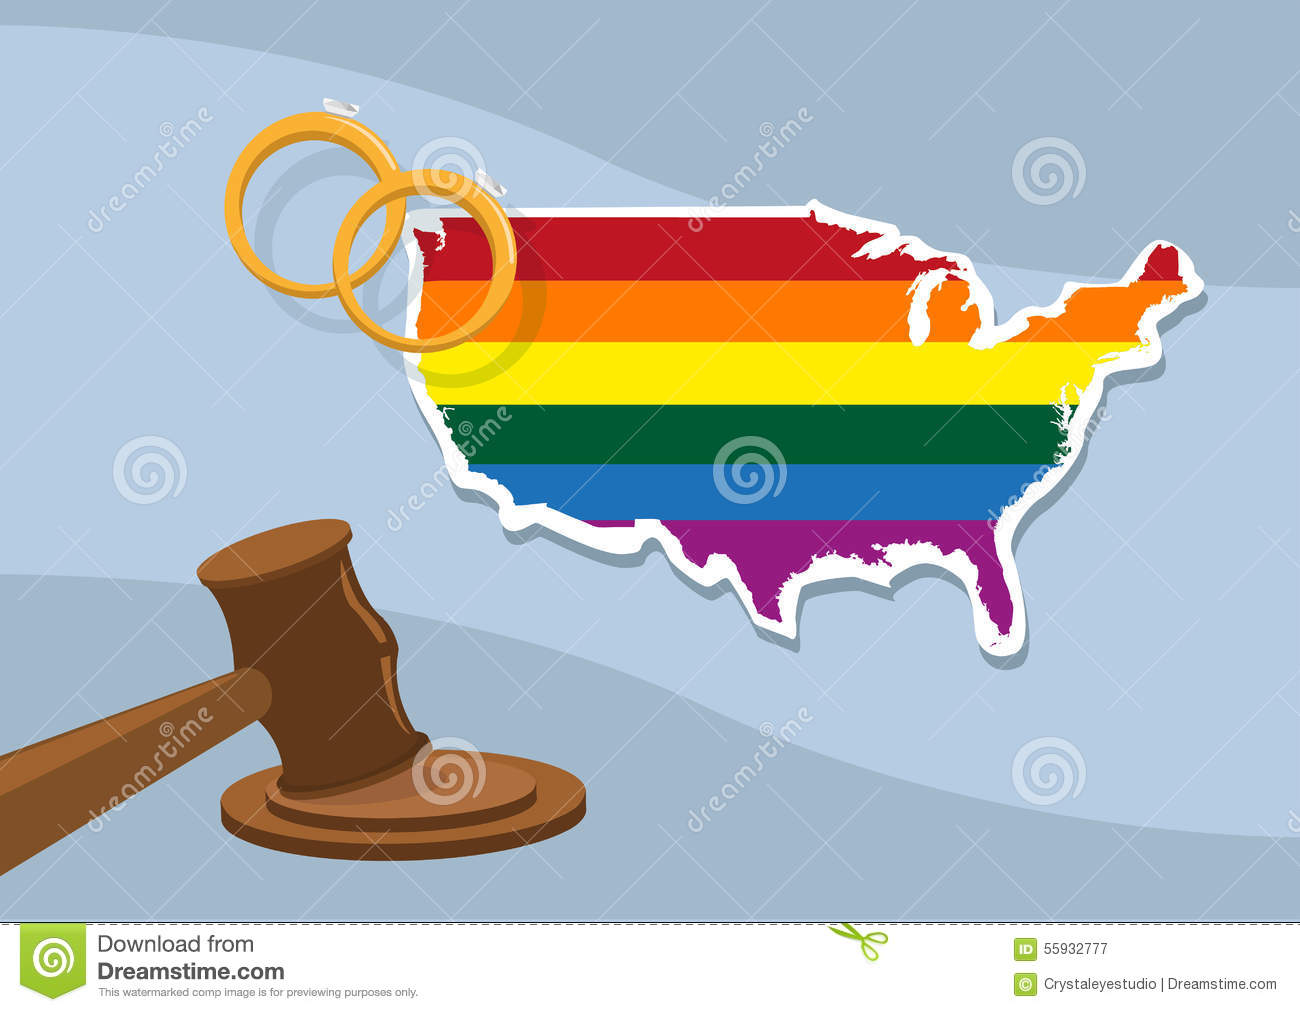 "an analysis of the concept of homosexual marriage in the united states of america Tions (defined as entities that ""govern, educate, or orga- nize a reference group  and  in-depth analysis of a panel of supreme court scholars to encourage  careful  the us government will legalize gay marriage at the state level"" using  a."